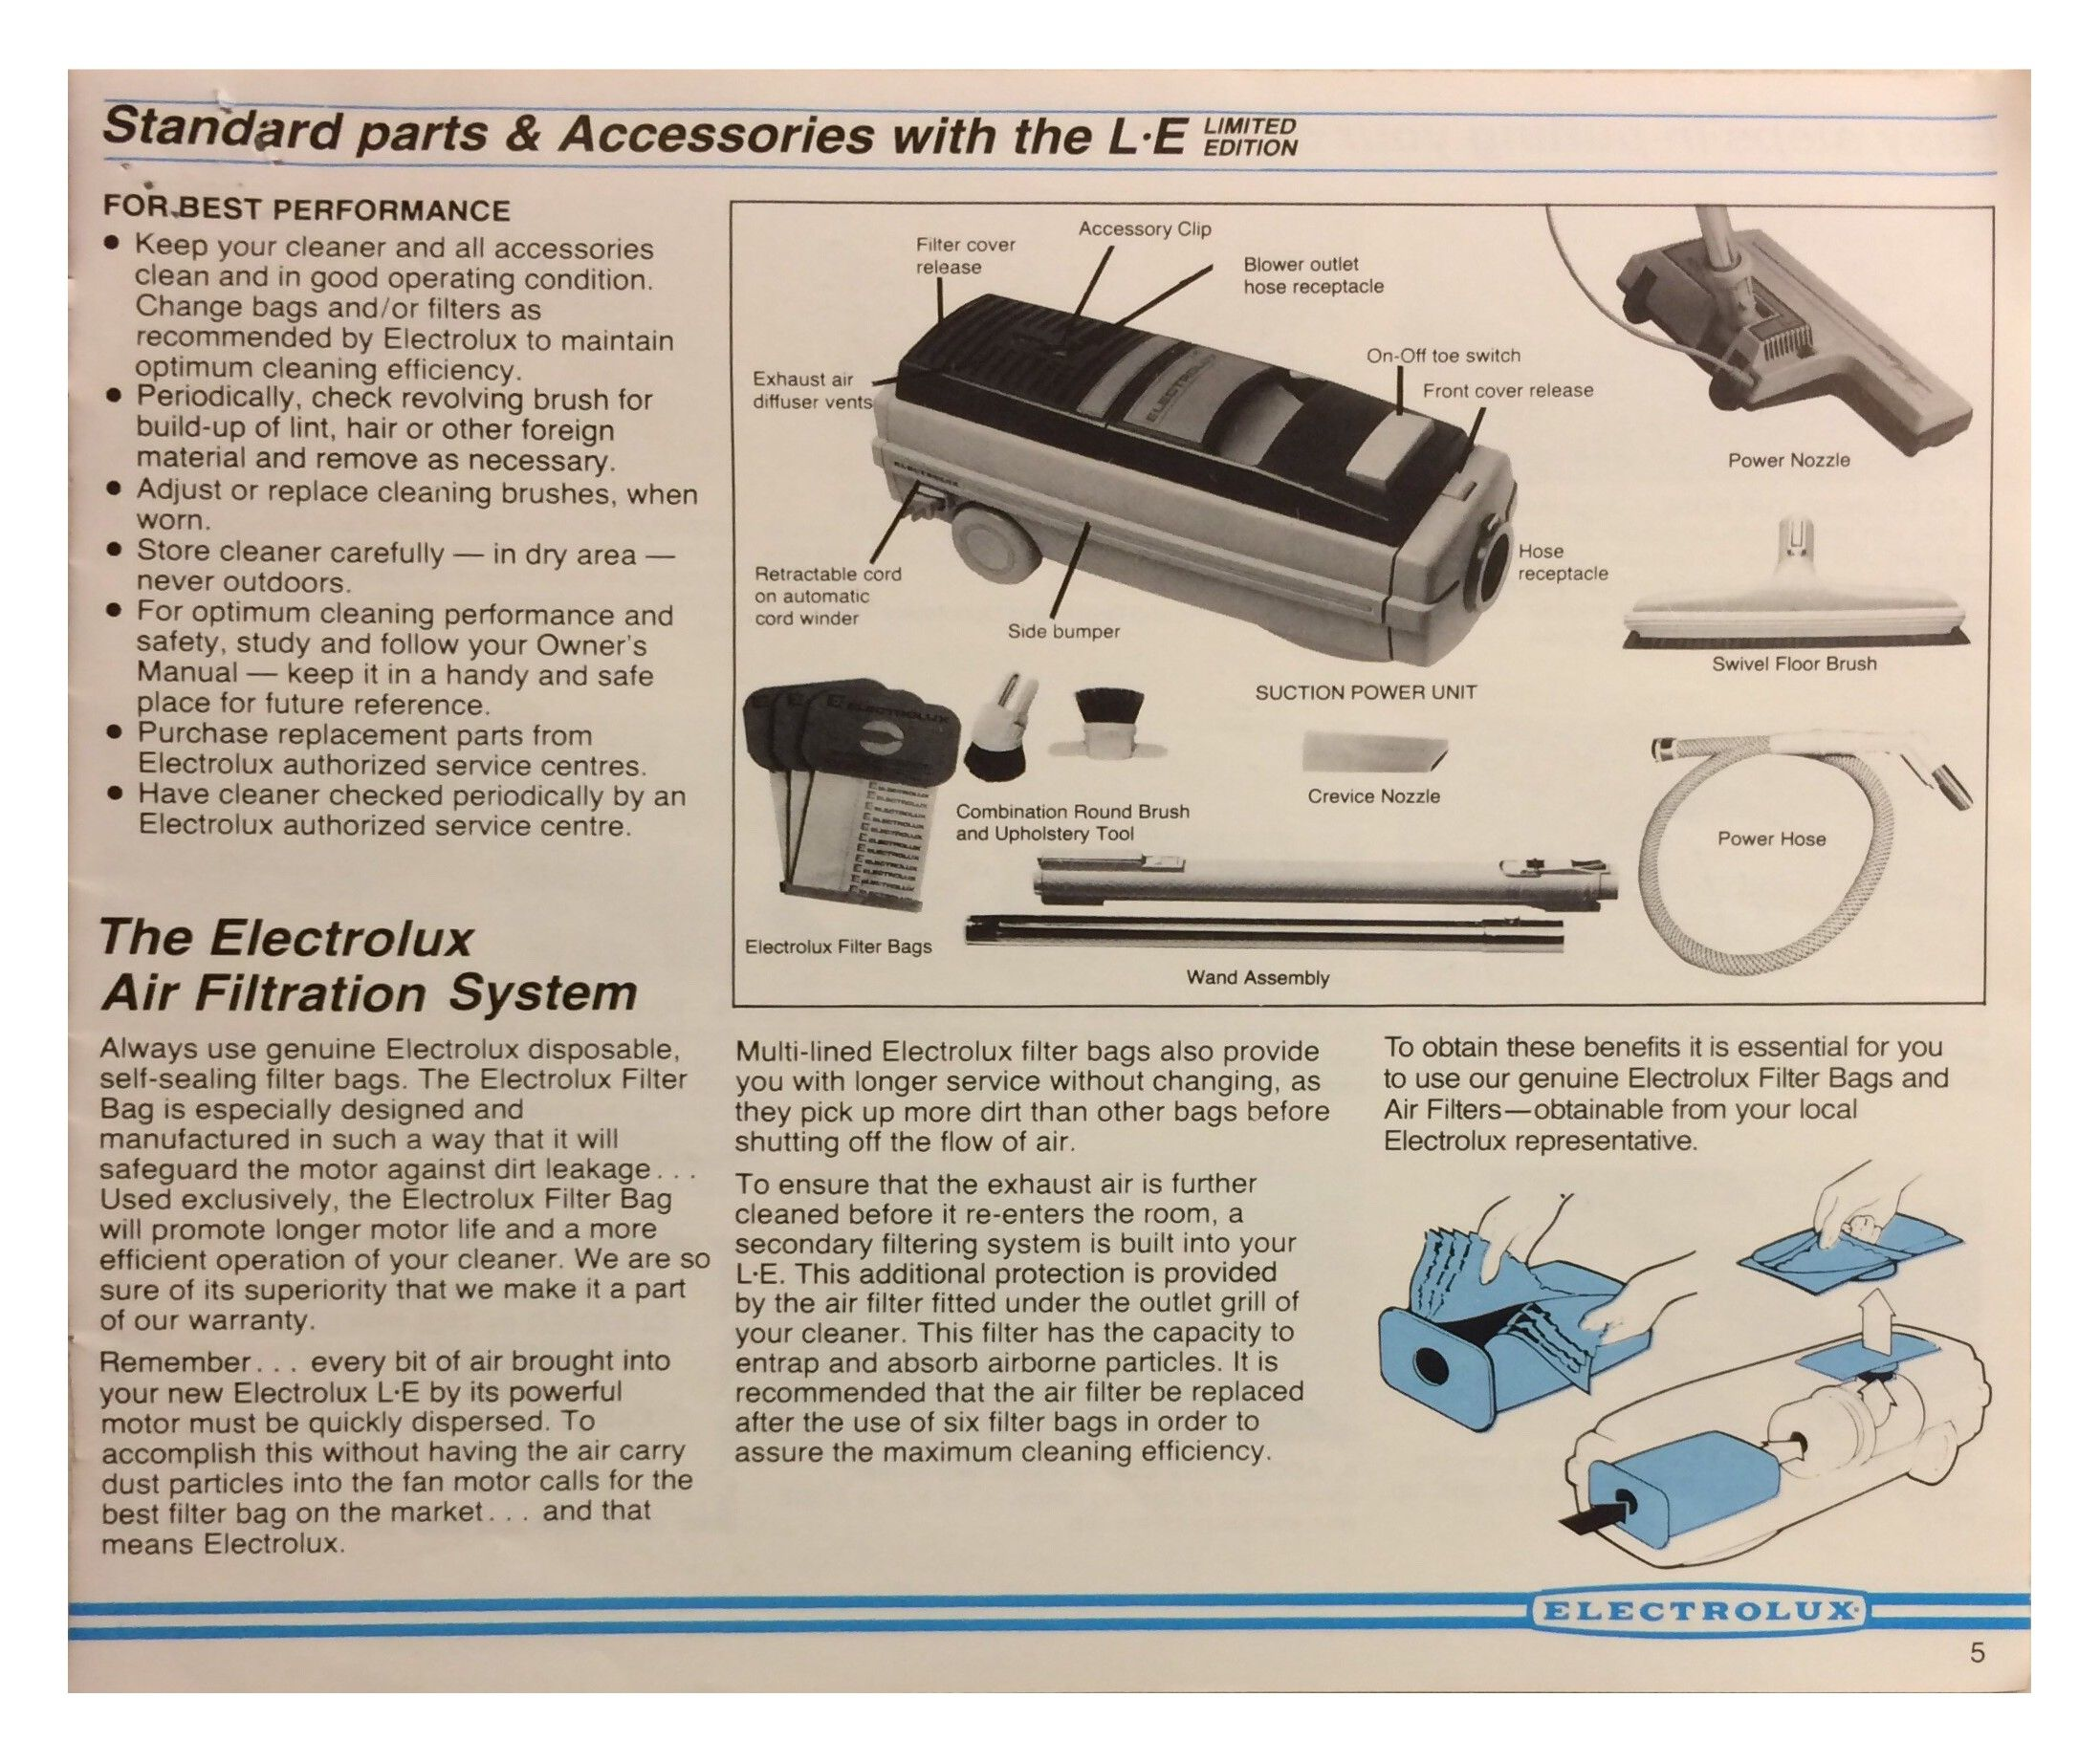 Electrolux 2100 Wiring Diagram Data Vacuum Cleaner Le Limited Edition Manual Pg 5 Fireplace Insert Rheostat